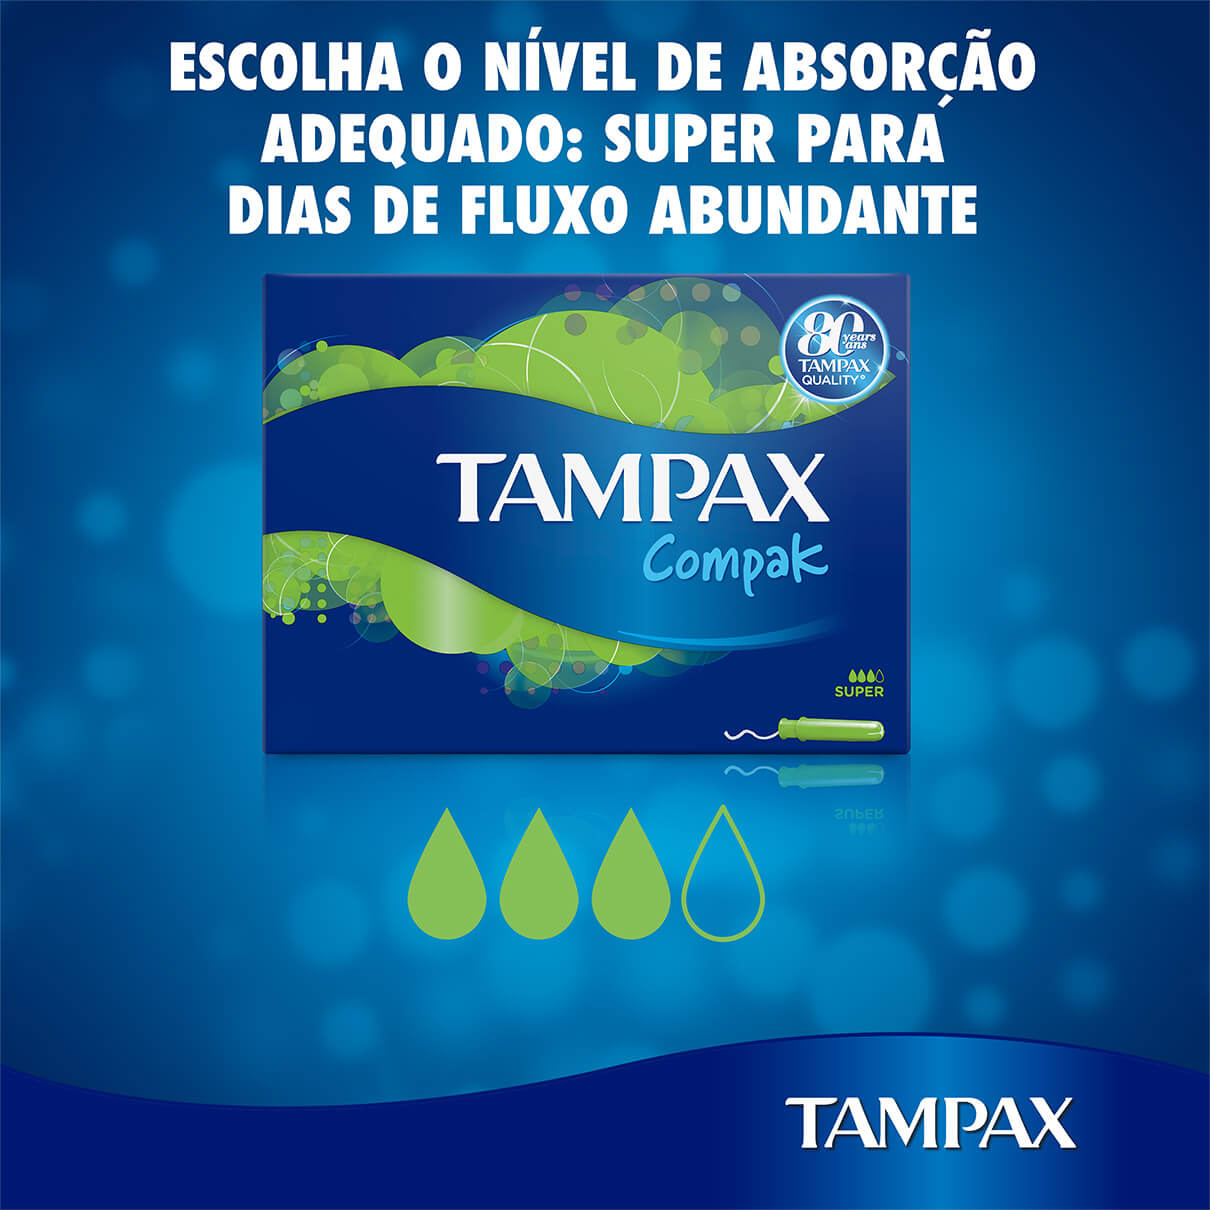 TAMPAX Compak Super tampoes menstruacao